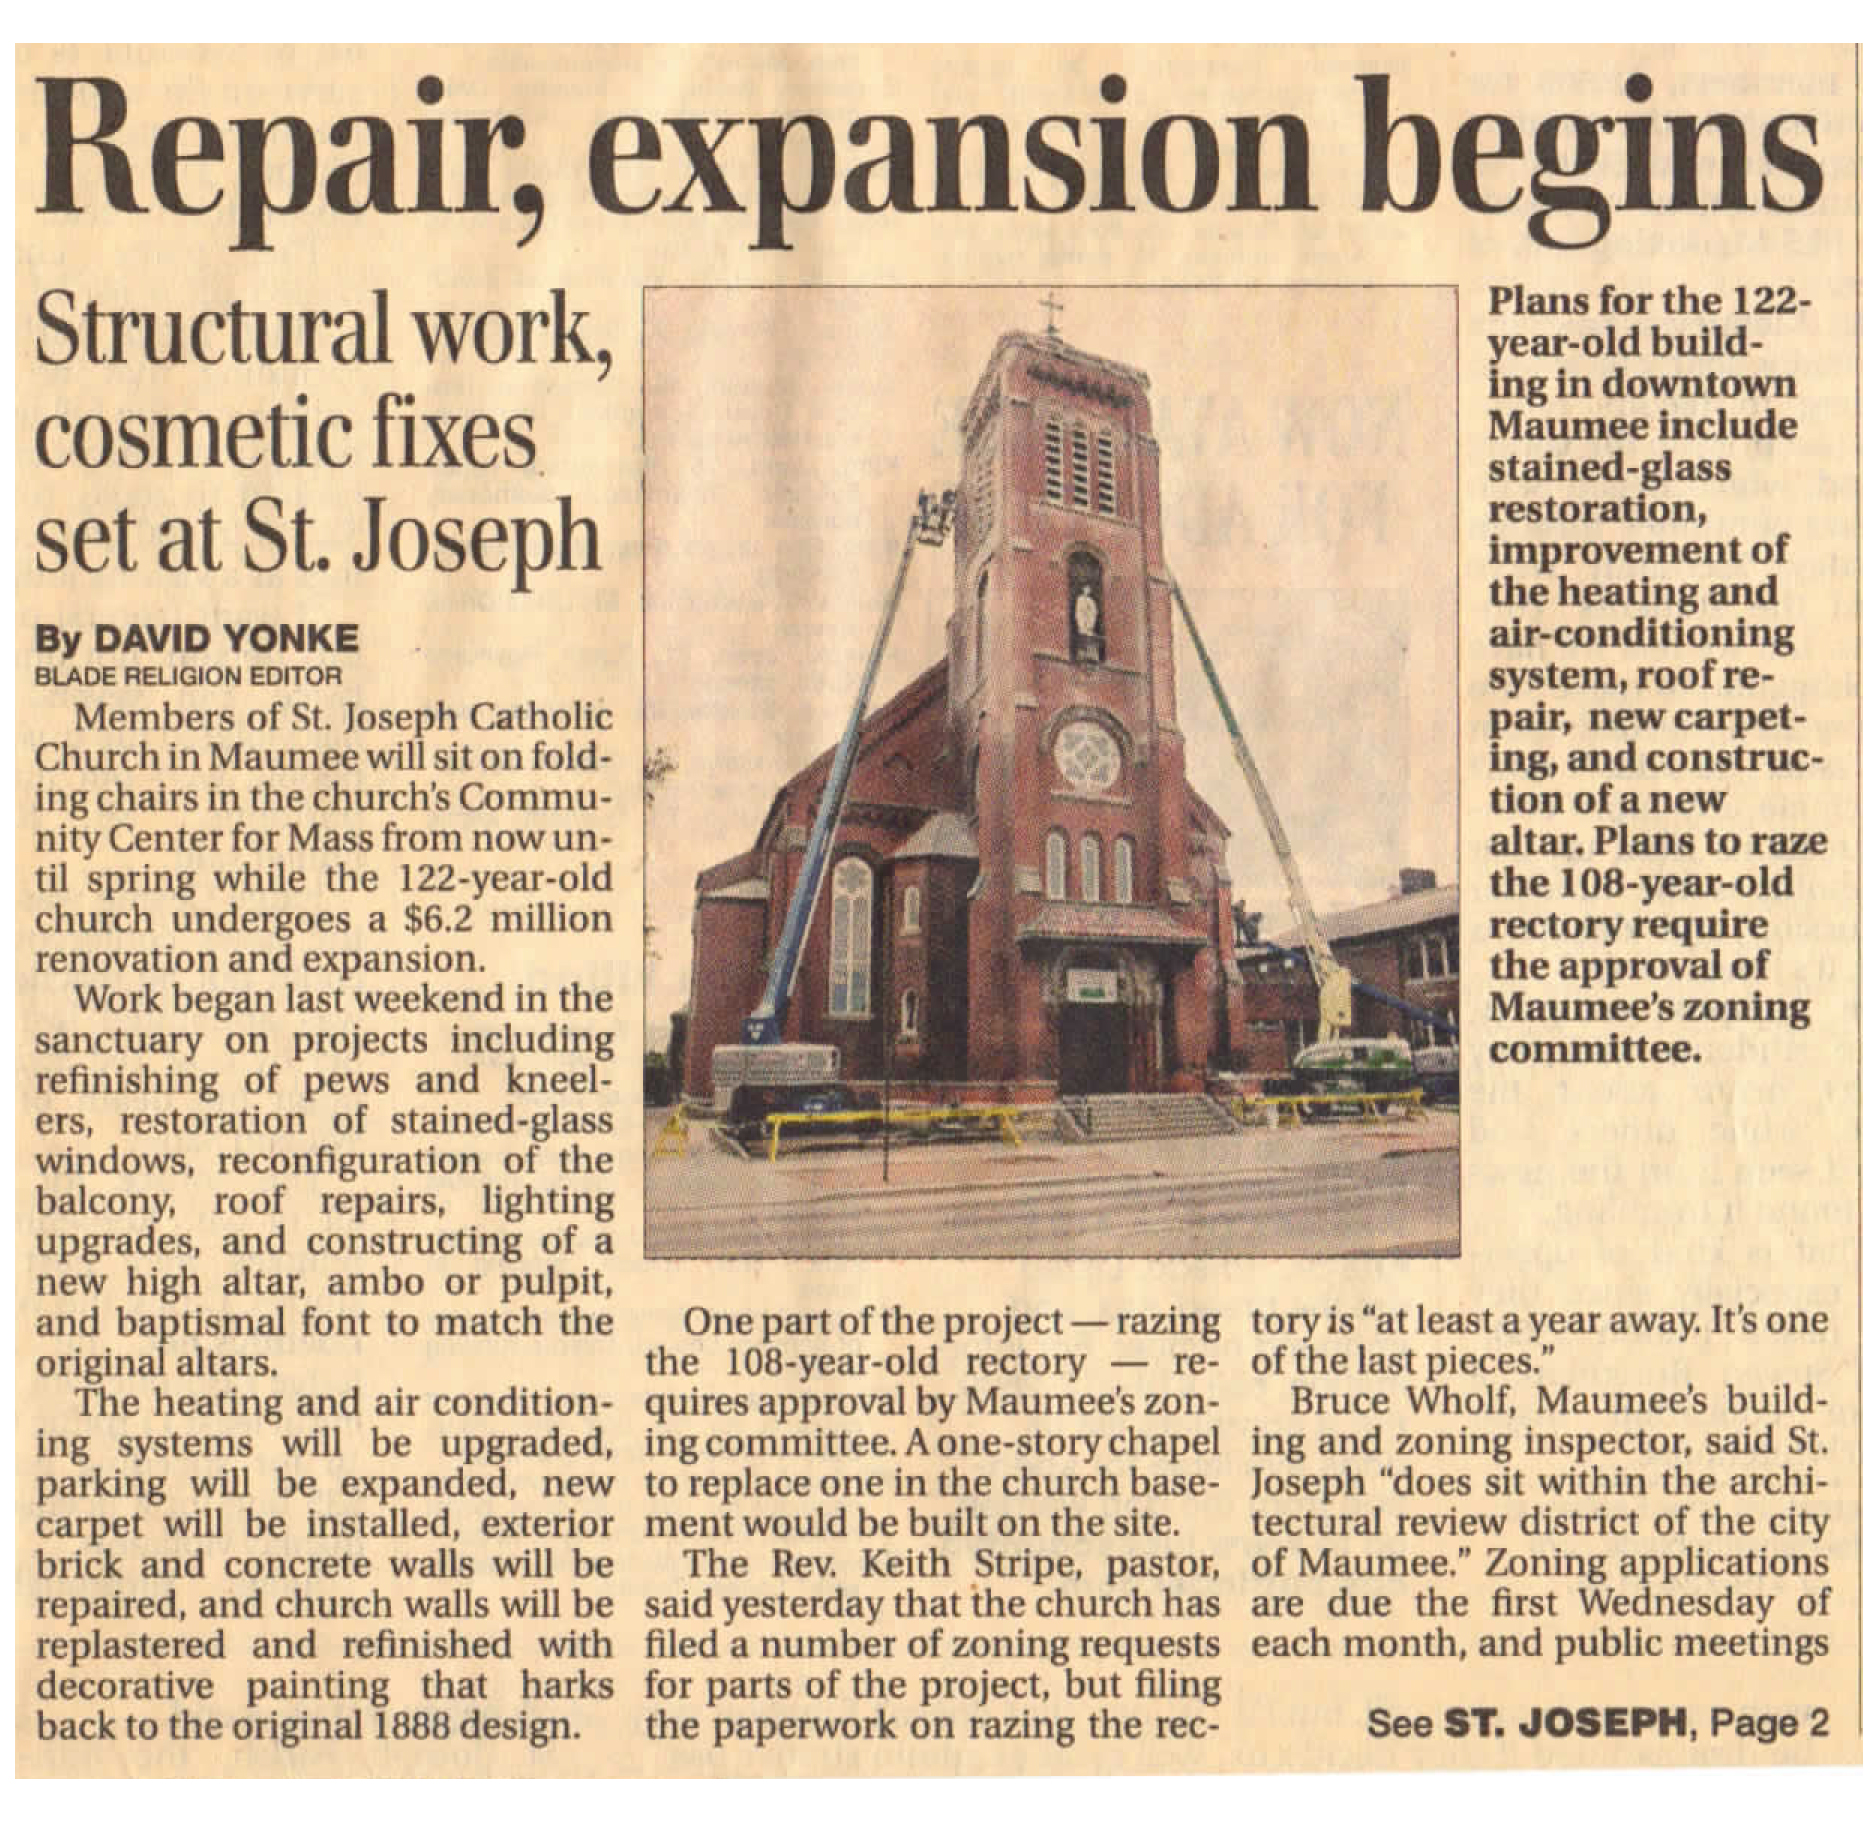 St Joseph Church Maumee Toledo Blade article on the church building renovation